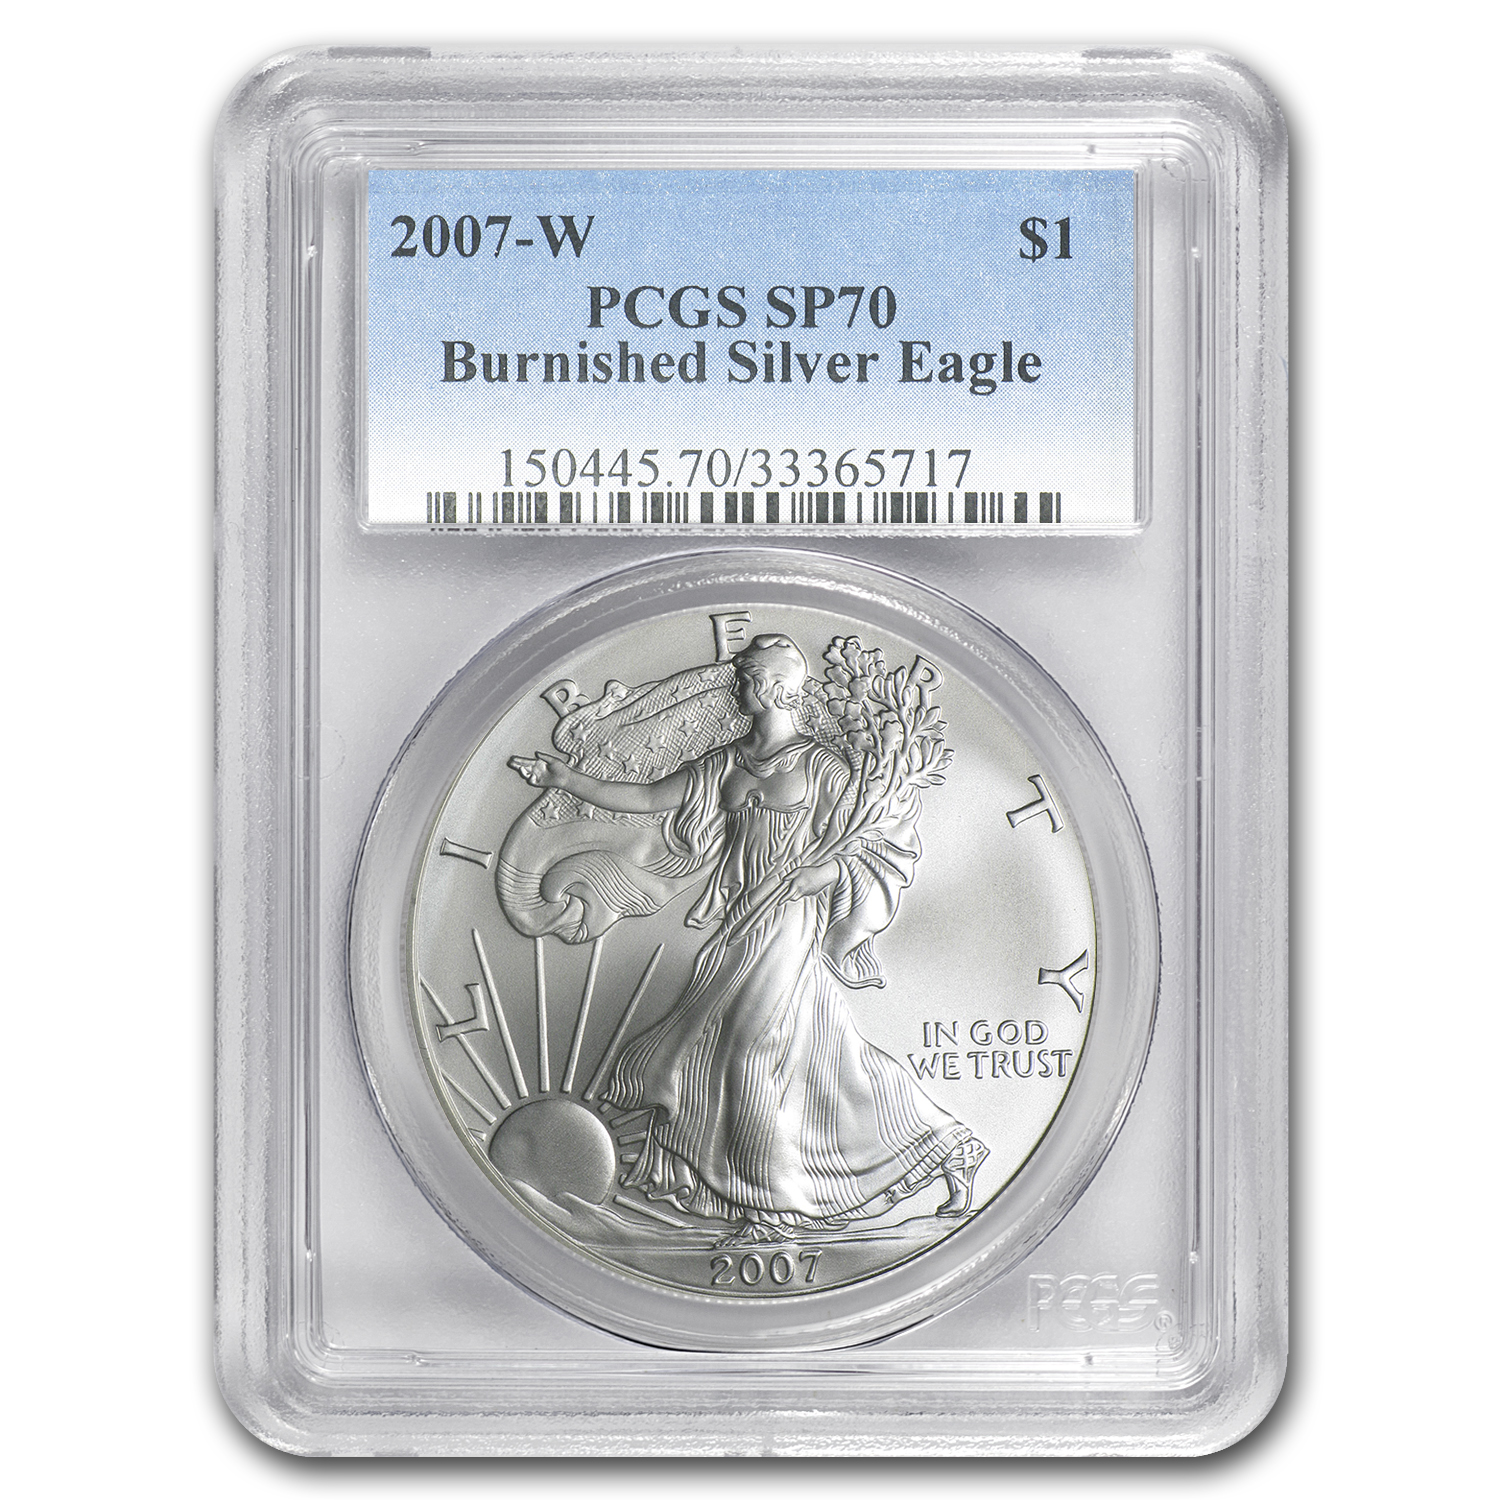 2007-W Burnished Silver American Eagle SP-70 PCGS